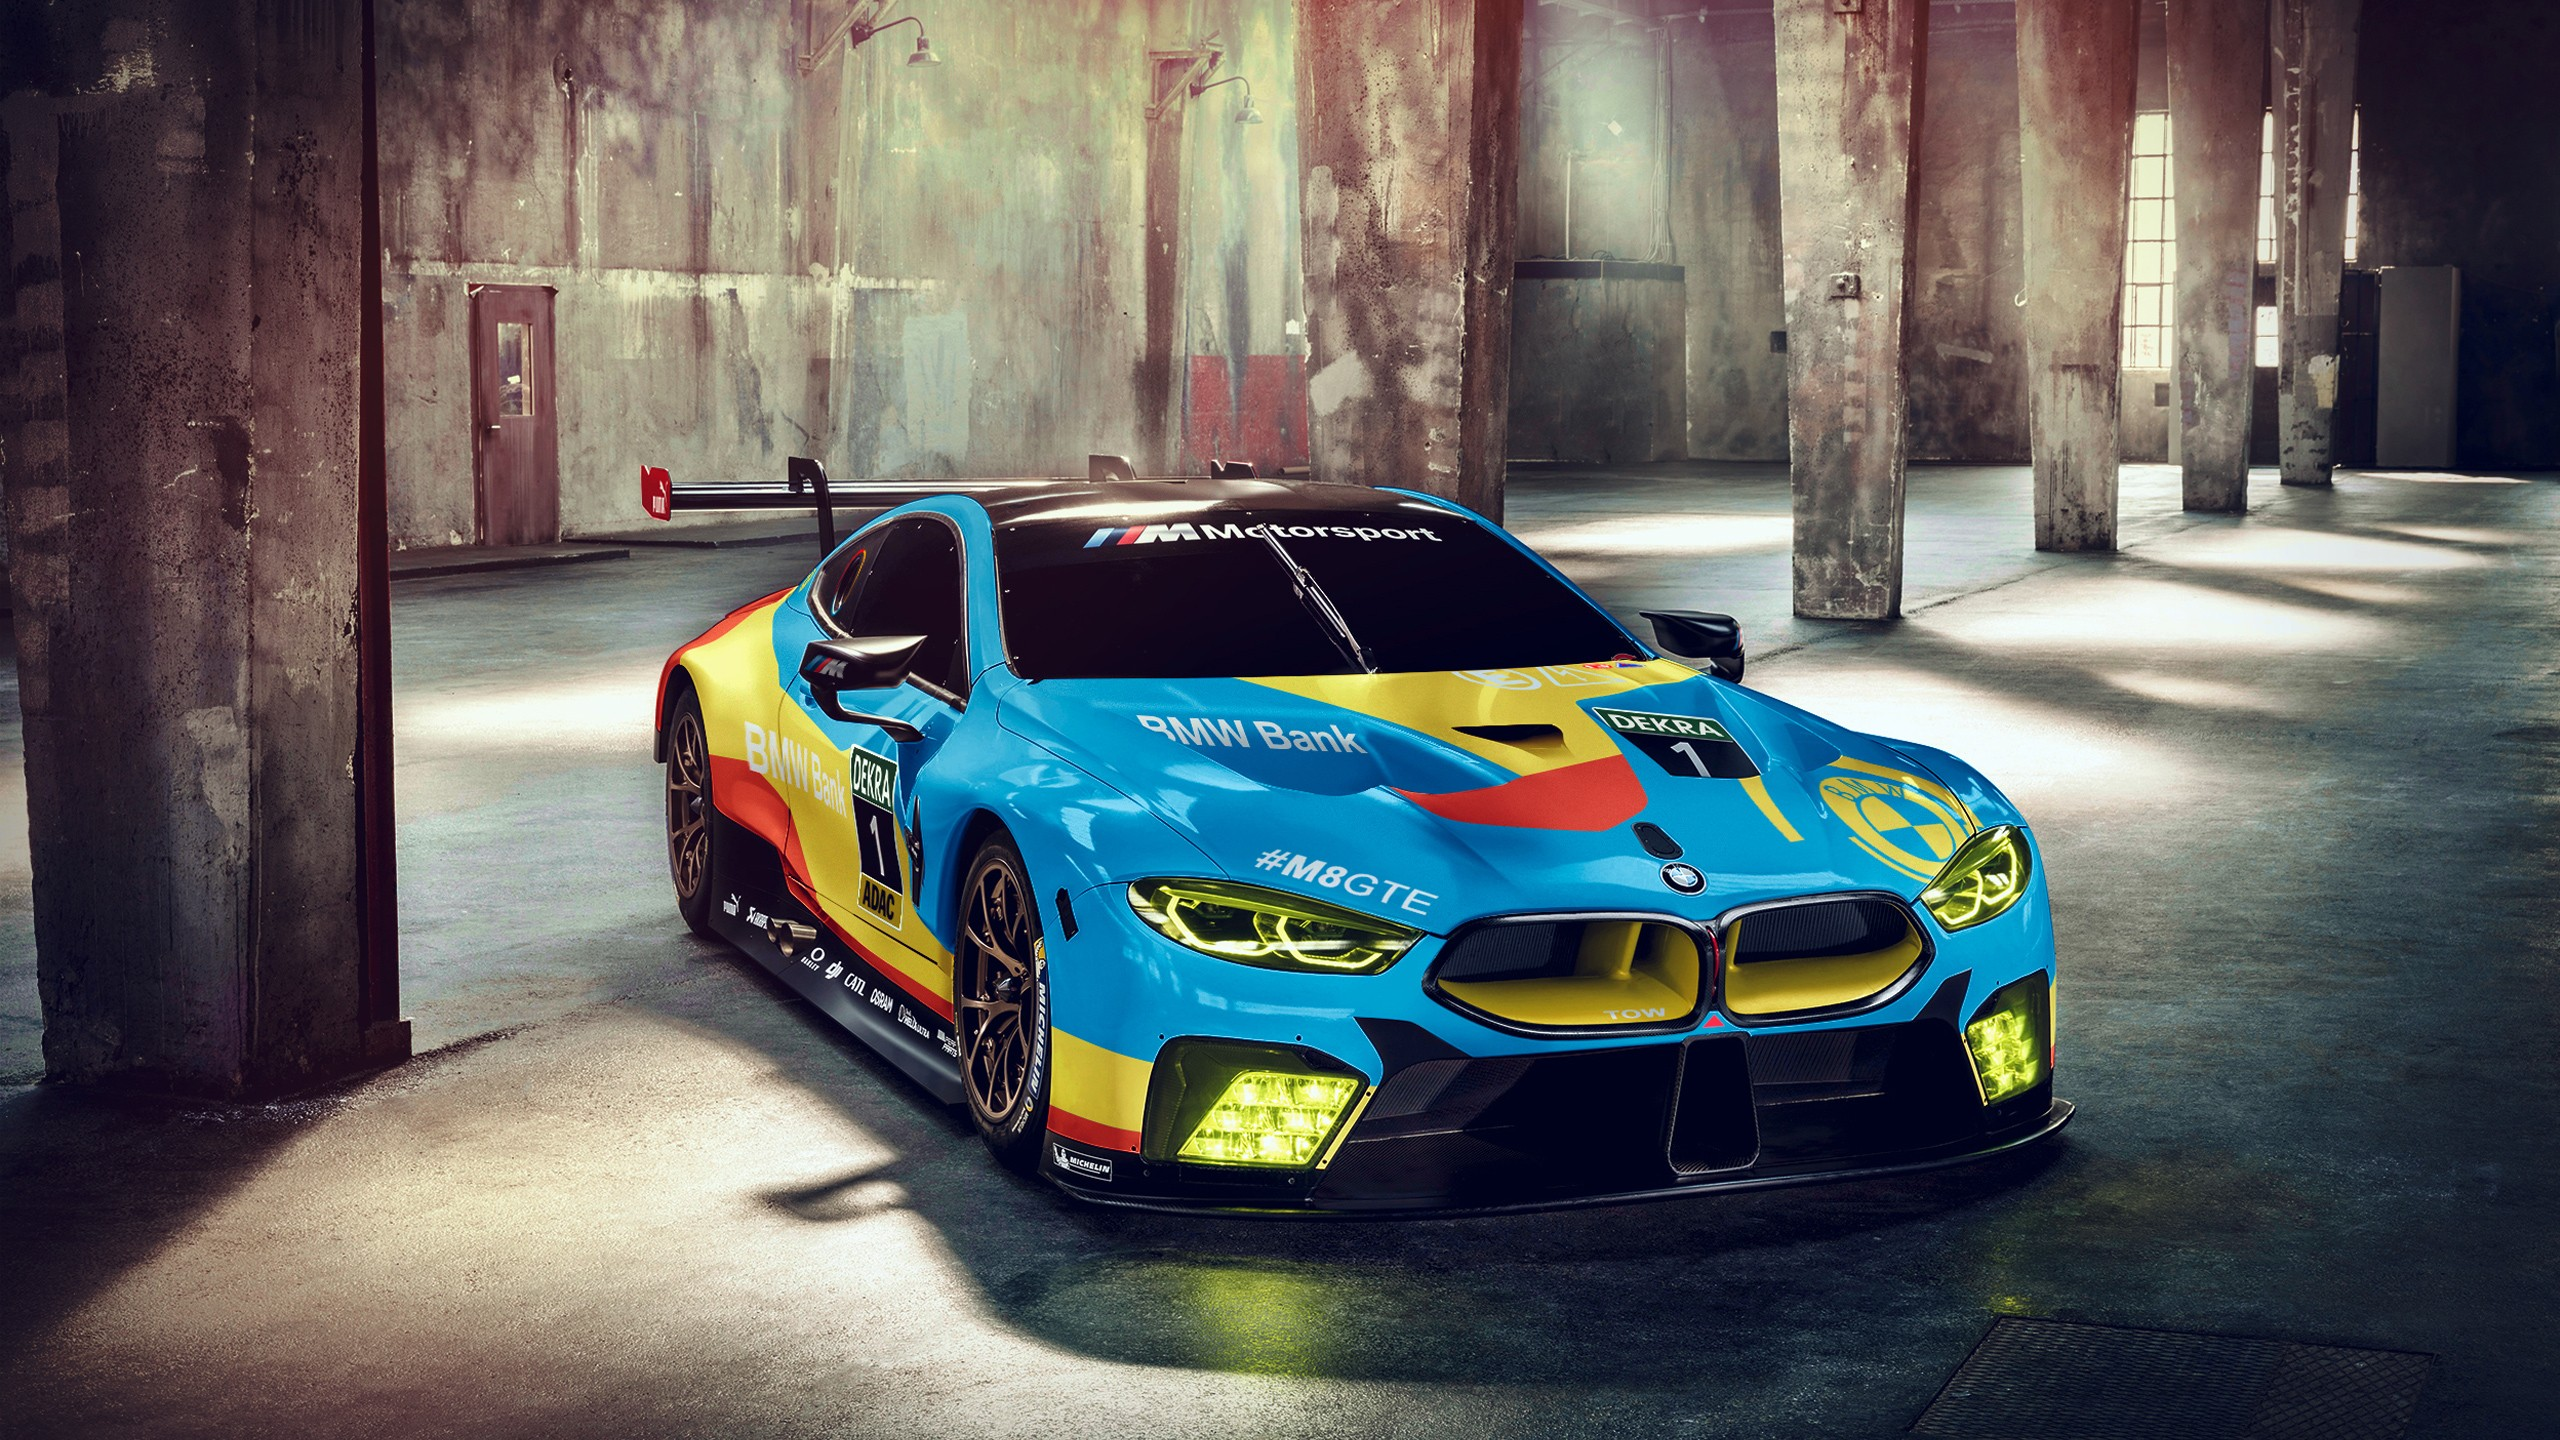 BMW M8 GTE 2018 Wallpaper | HD Car Wallpapers | ID #9270